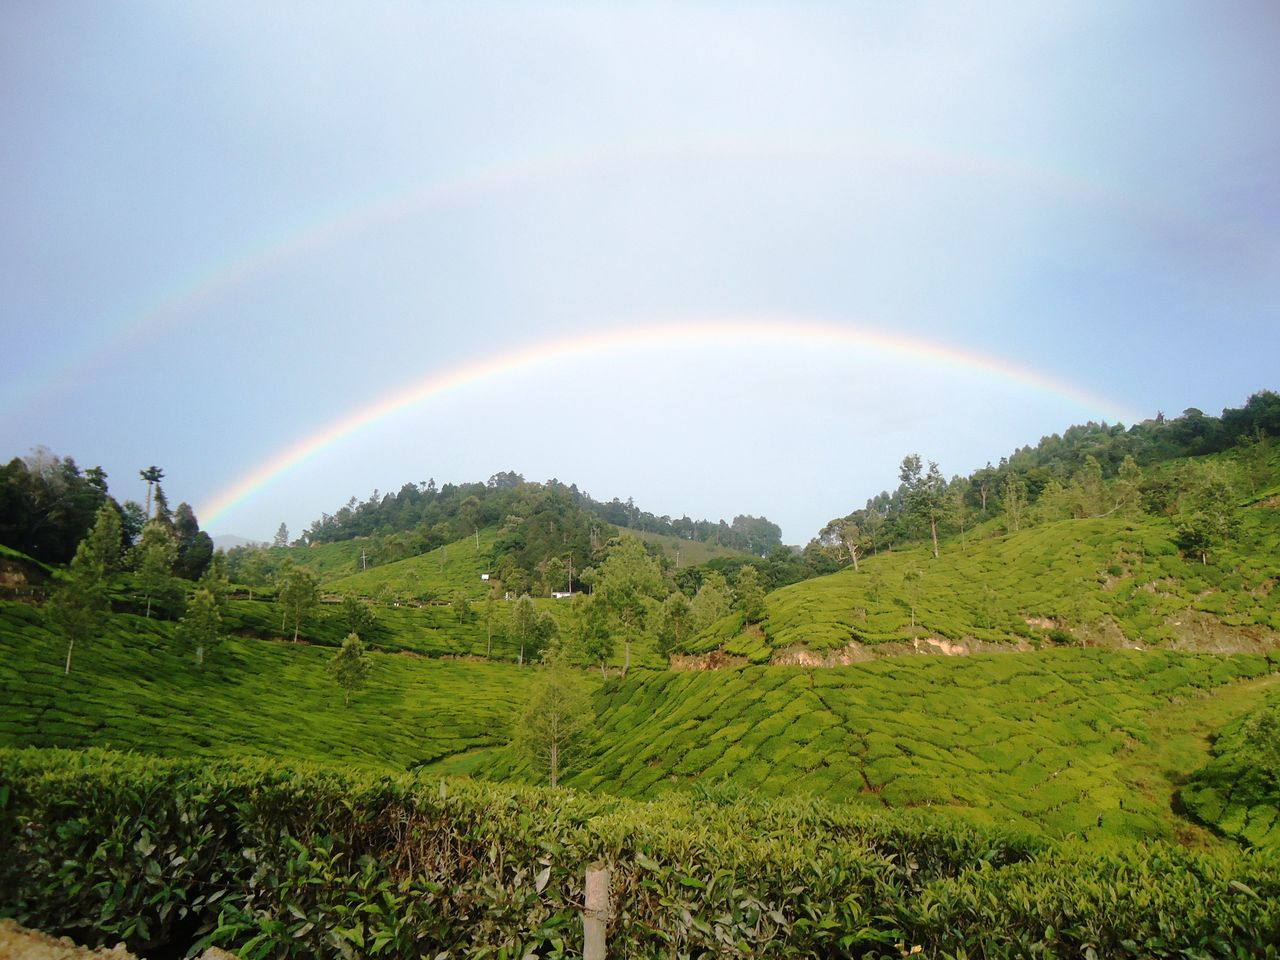 Beauty In Nature Curve Day Double Rainbow Double Rainbows Grass Green Color Growth Idyllic Landscape Multi Colored Natural Arch Nature No People Outdoors Rainbow Refraction Scenics Sky Tranquil Scene Tranquility Tree